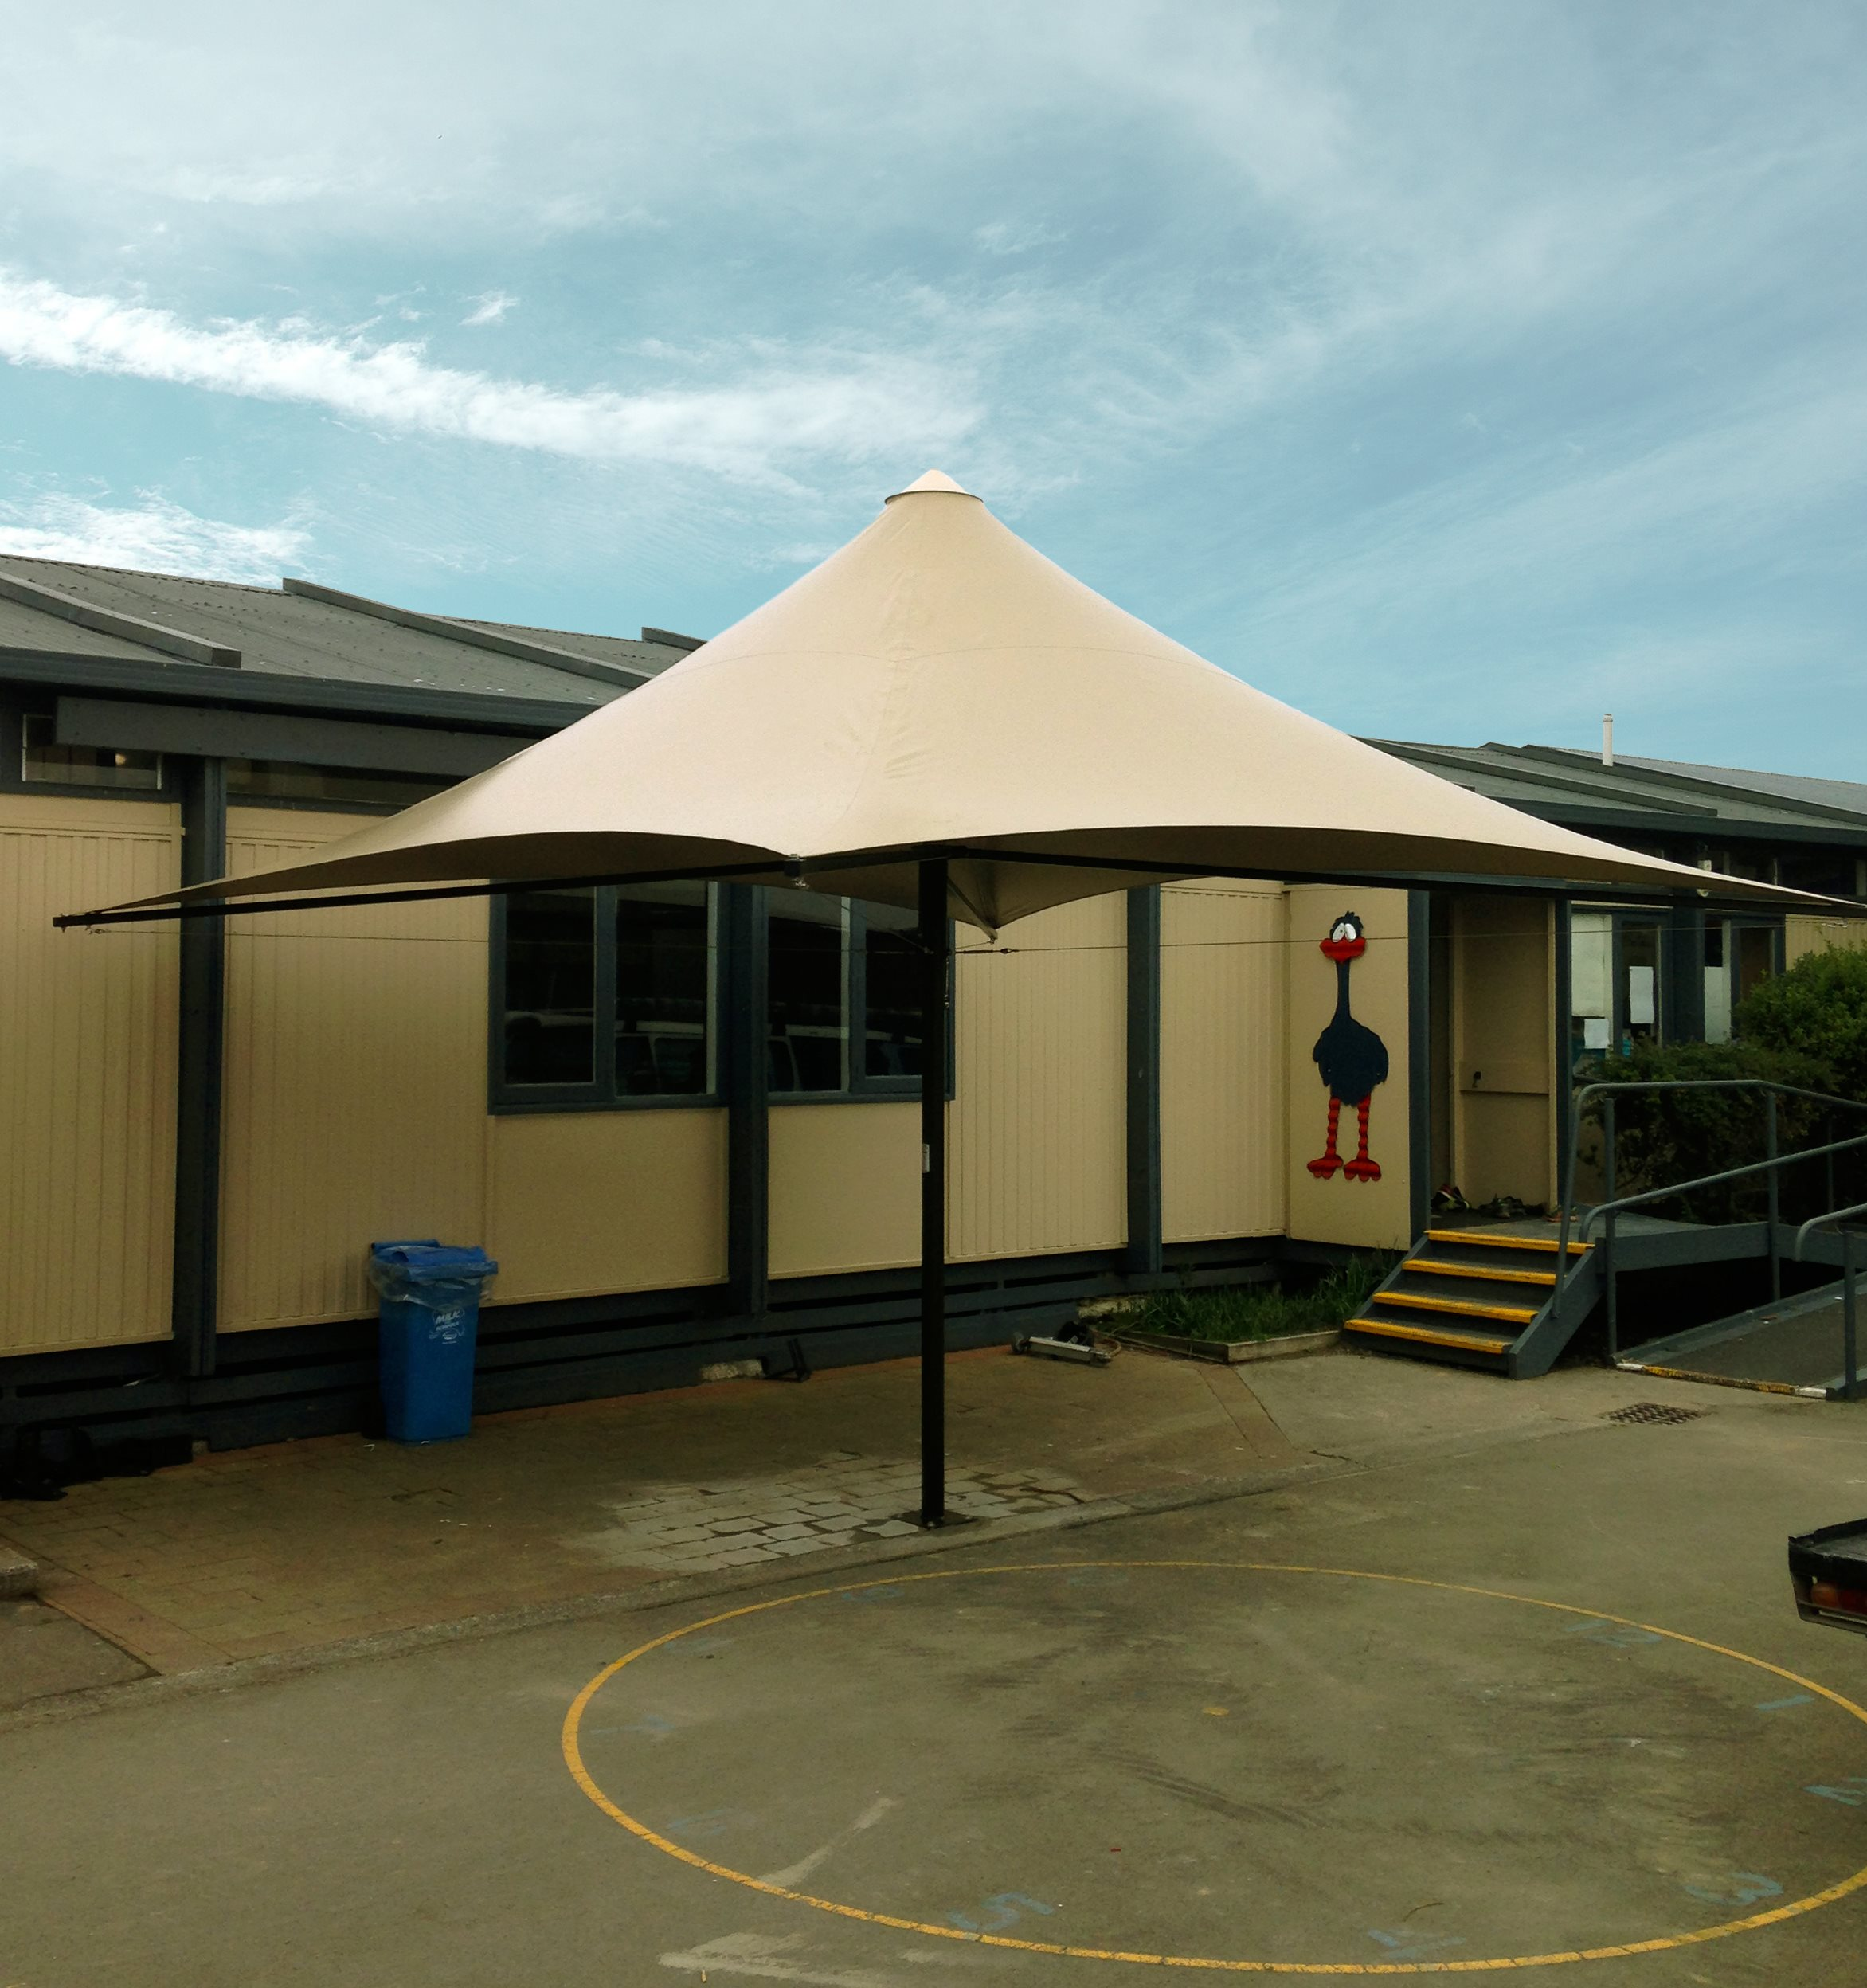 Parasol Umbrella being shading a play area for kids at Leithfield School